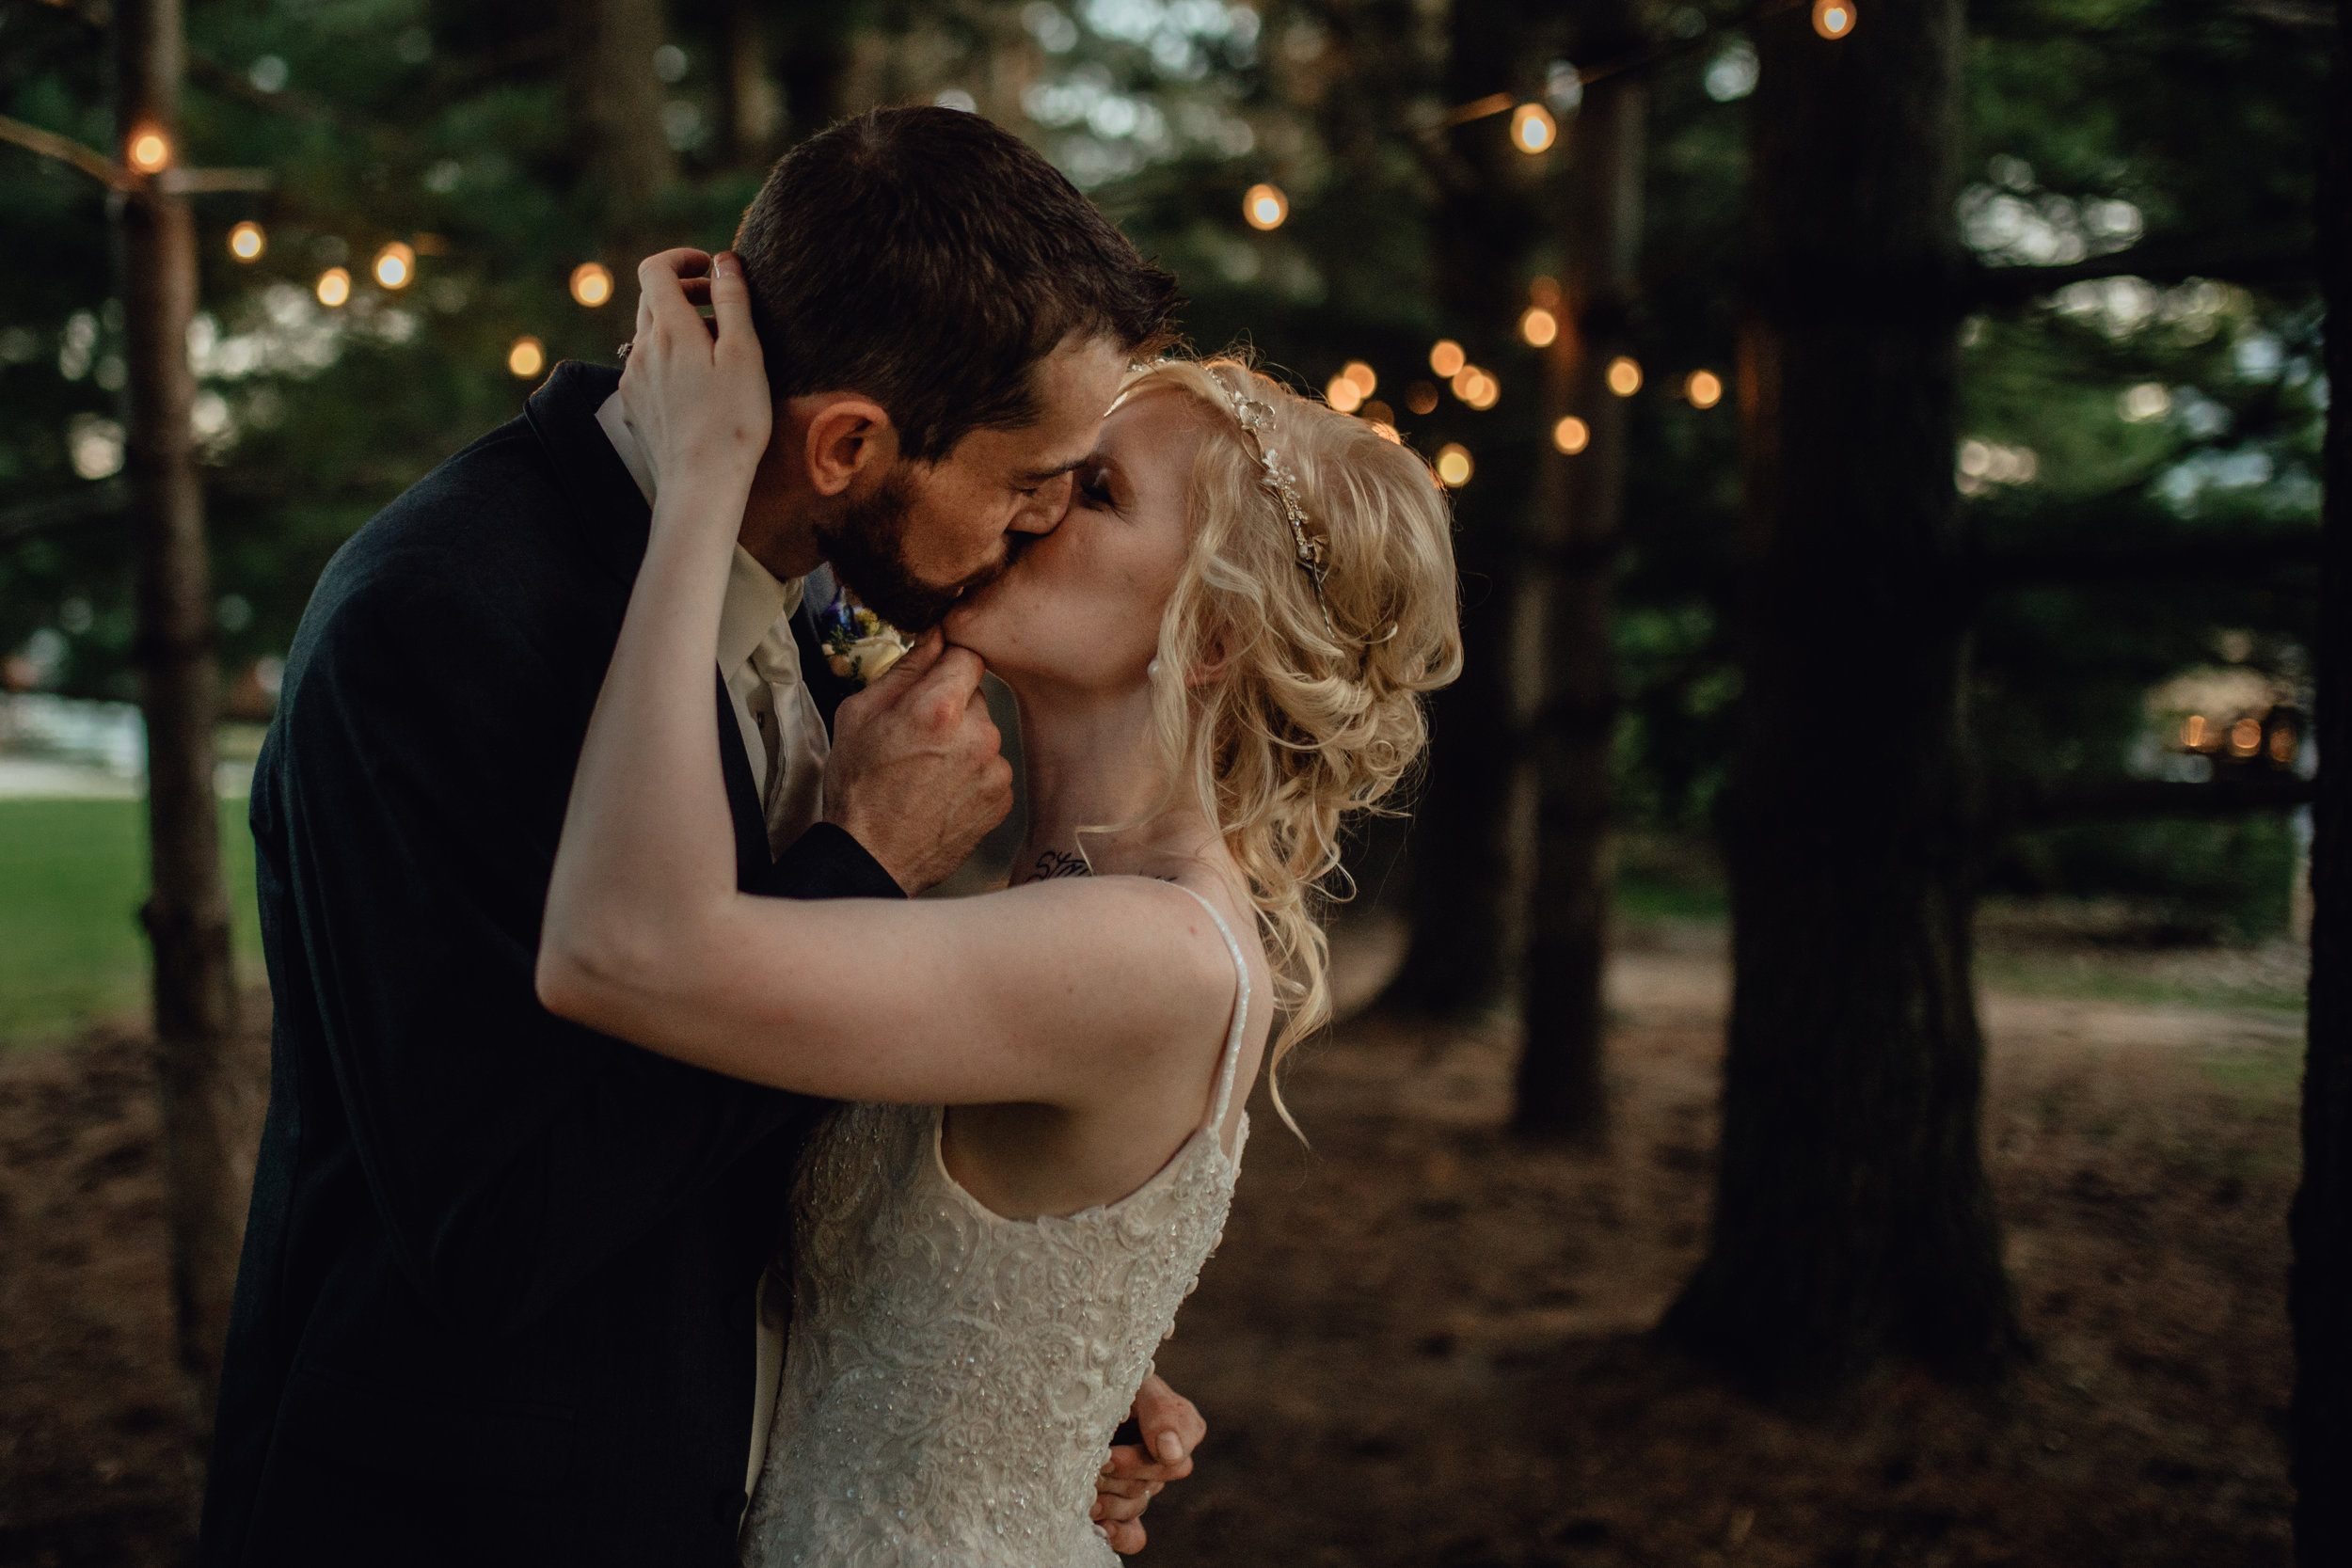 bride and groom kiss under string lights in forest at oak hill weddings path of pines